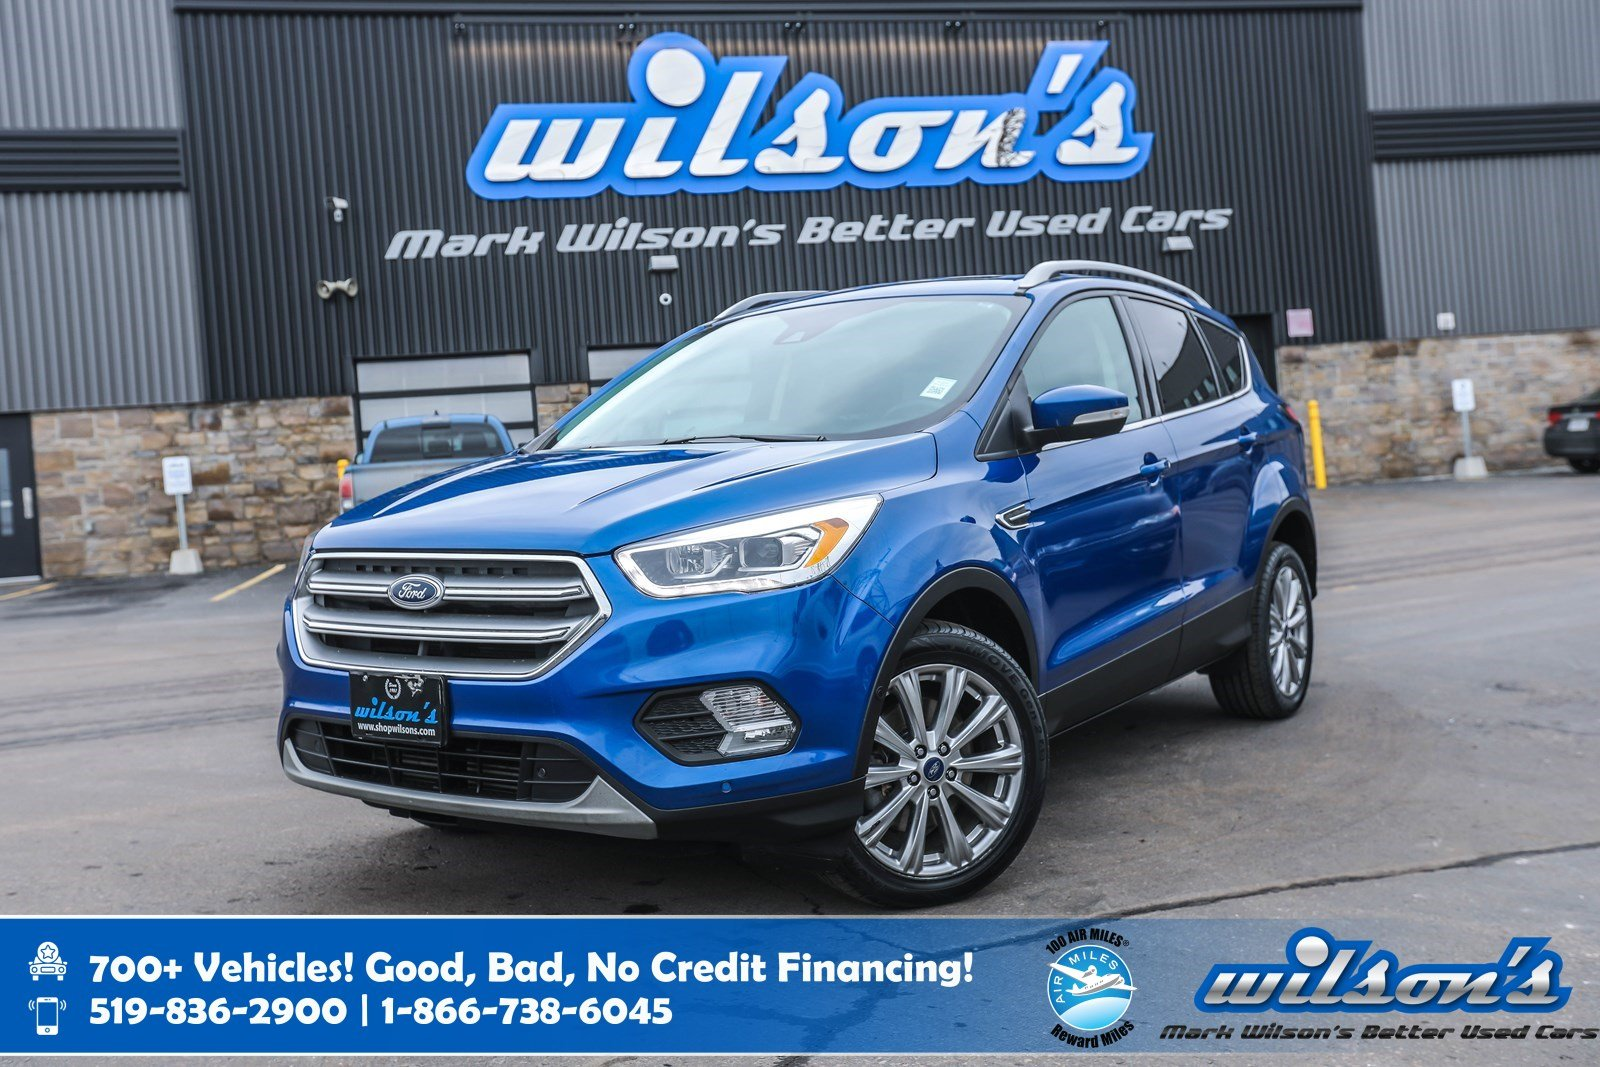 Certified Pre-Owned 2017 Ford Escape Titanium 4WD, Leather, Navigation, Sunroof, Heated Seats, Rear Camera, Remote Start and more!